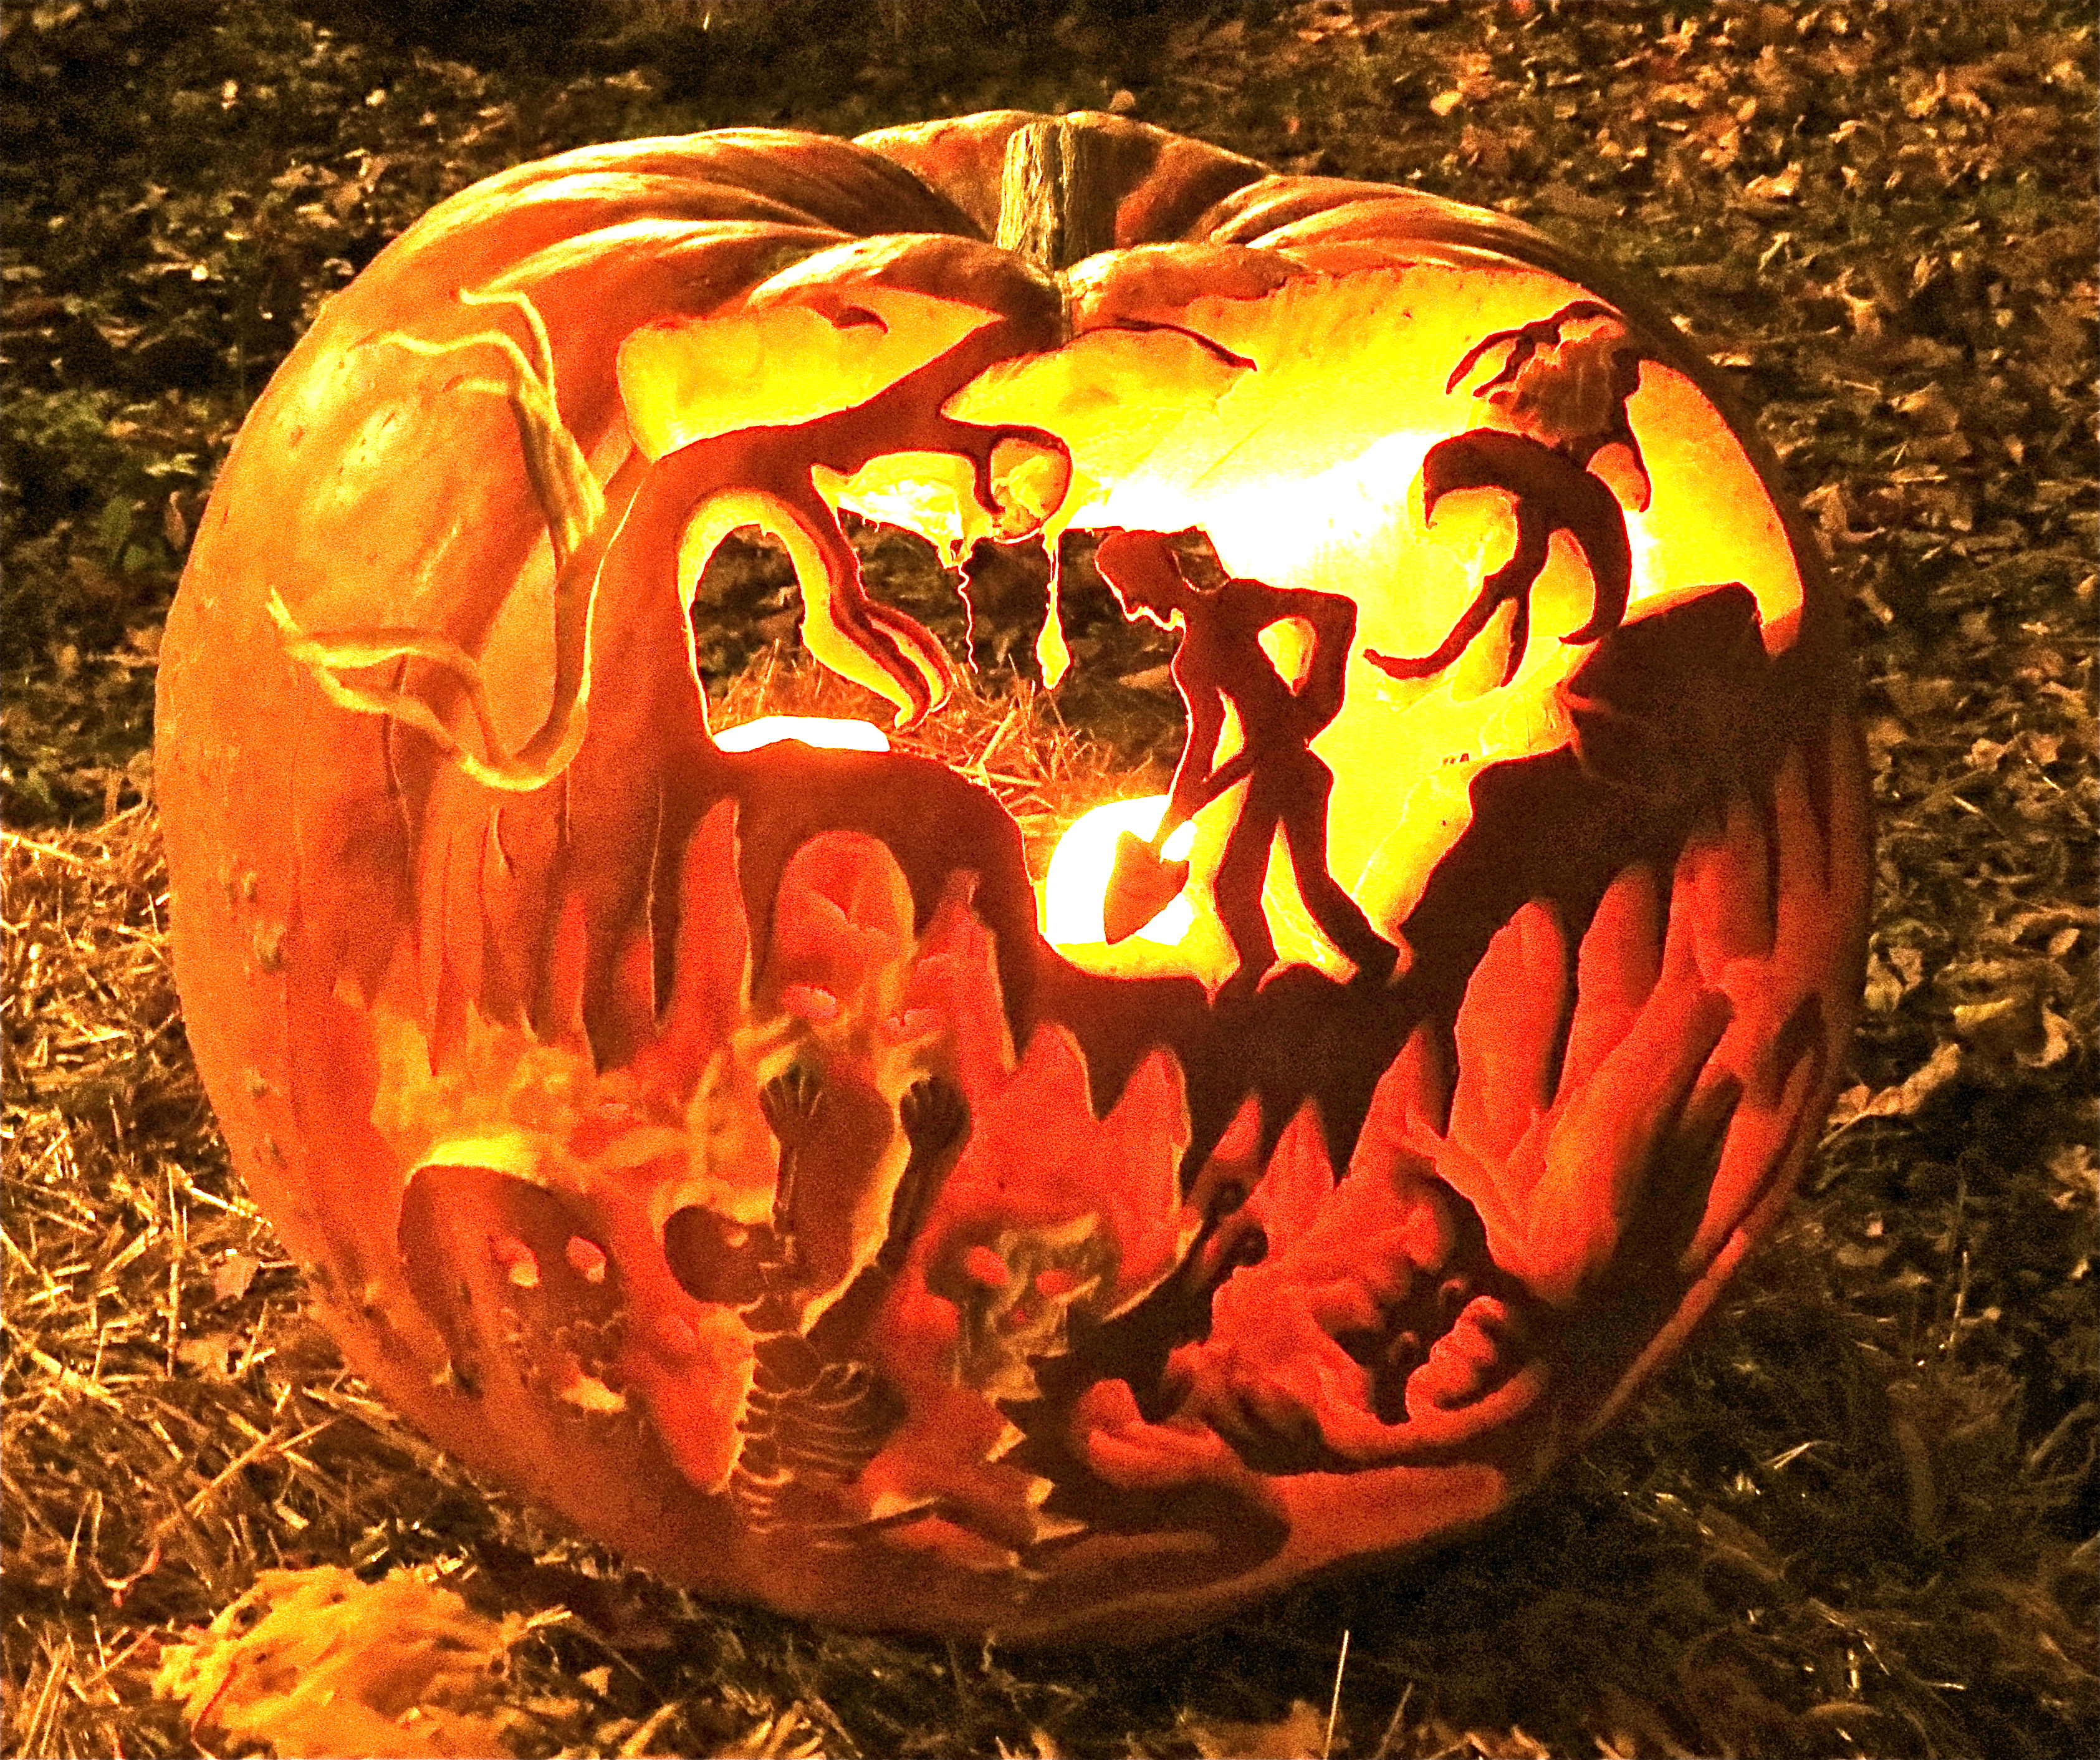 Pumpkin carving psalmboxkey s